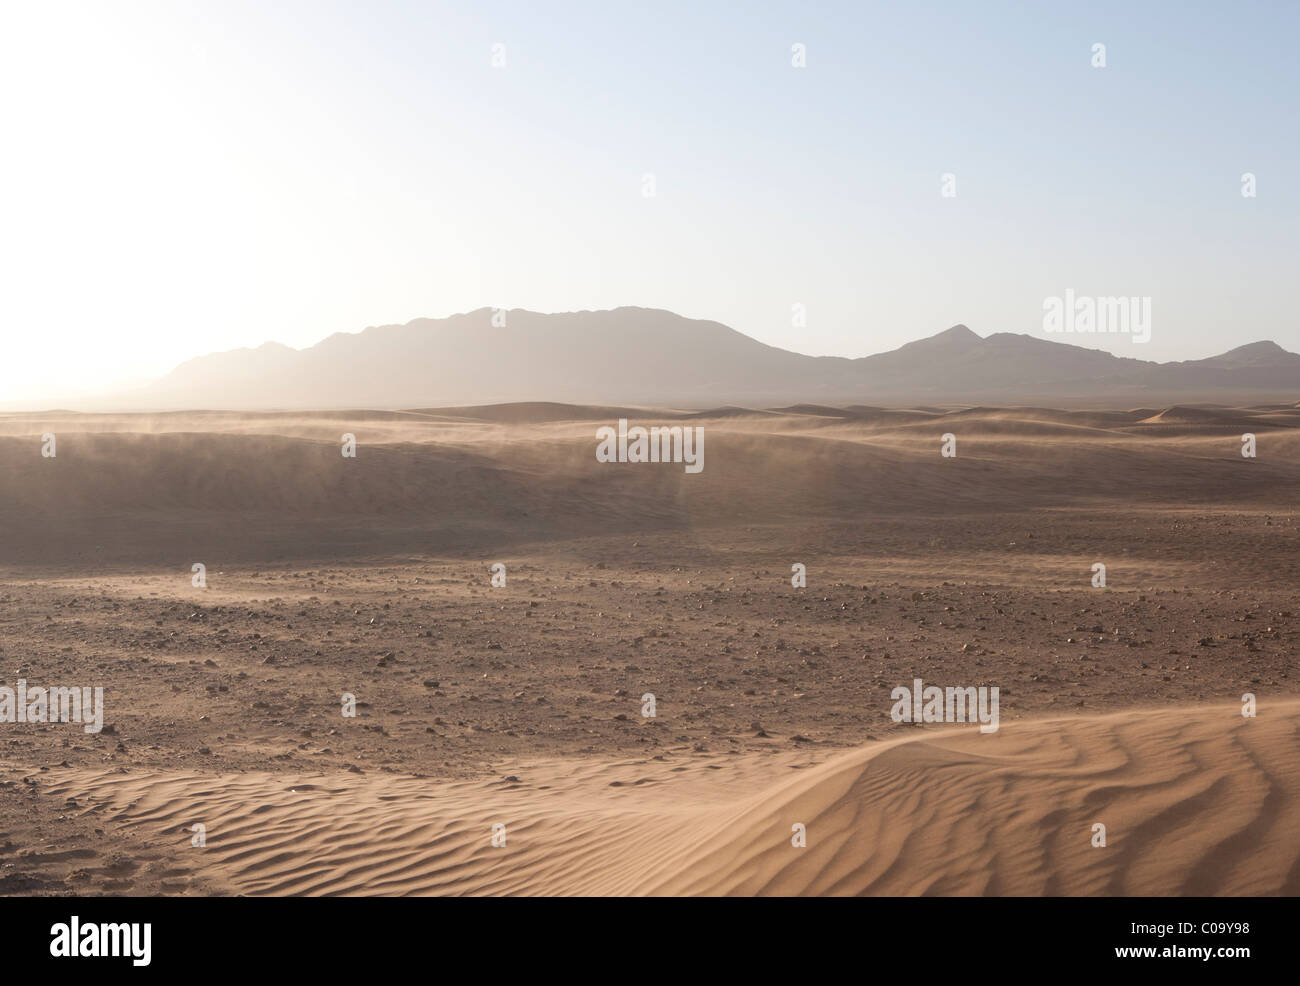 Sand dunes (Ergs) in Sahara desert caused by  aeolian processes with mountain terrain in distance. Morocco. - Stock Image